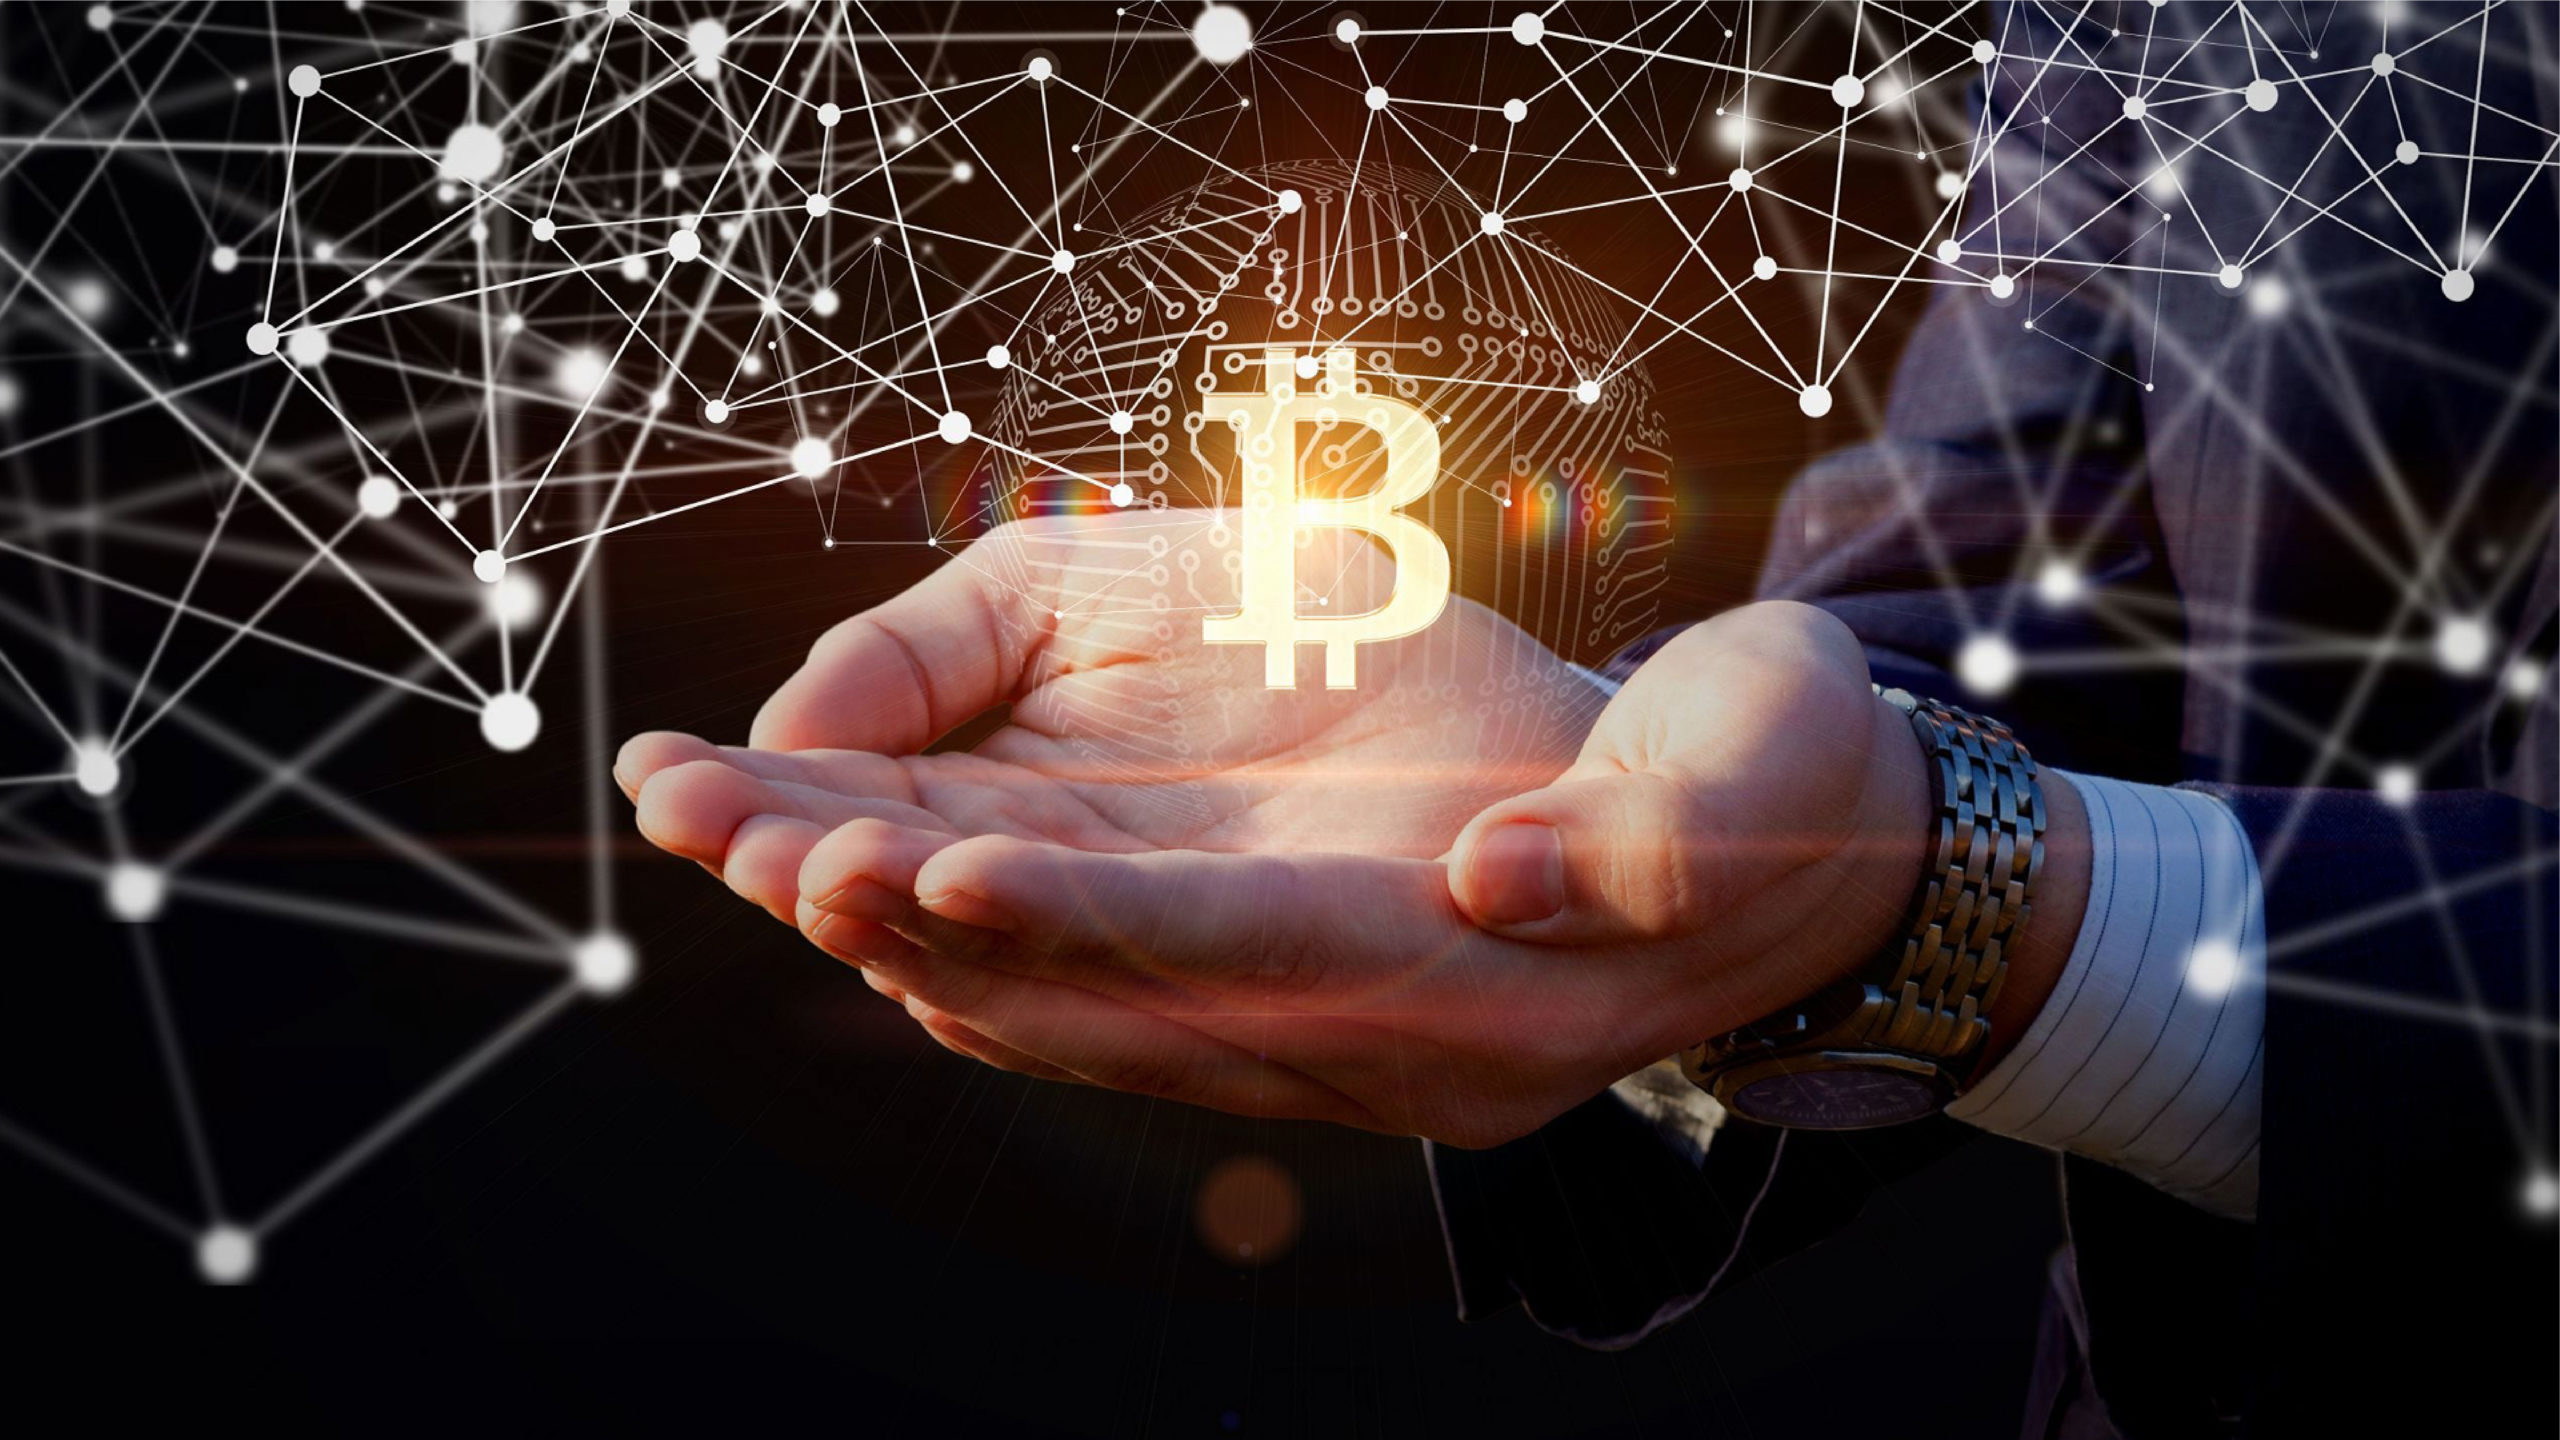 MicroStrategy holds about 70,470 Bitcoins, worth over $1.59 billion.